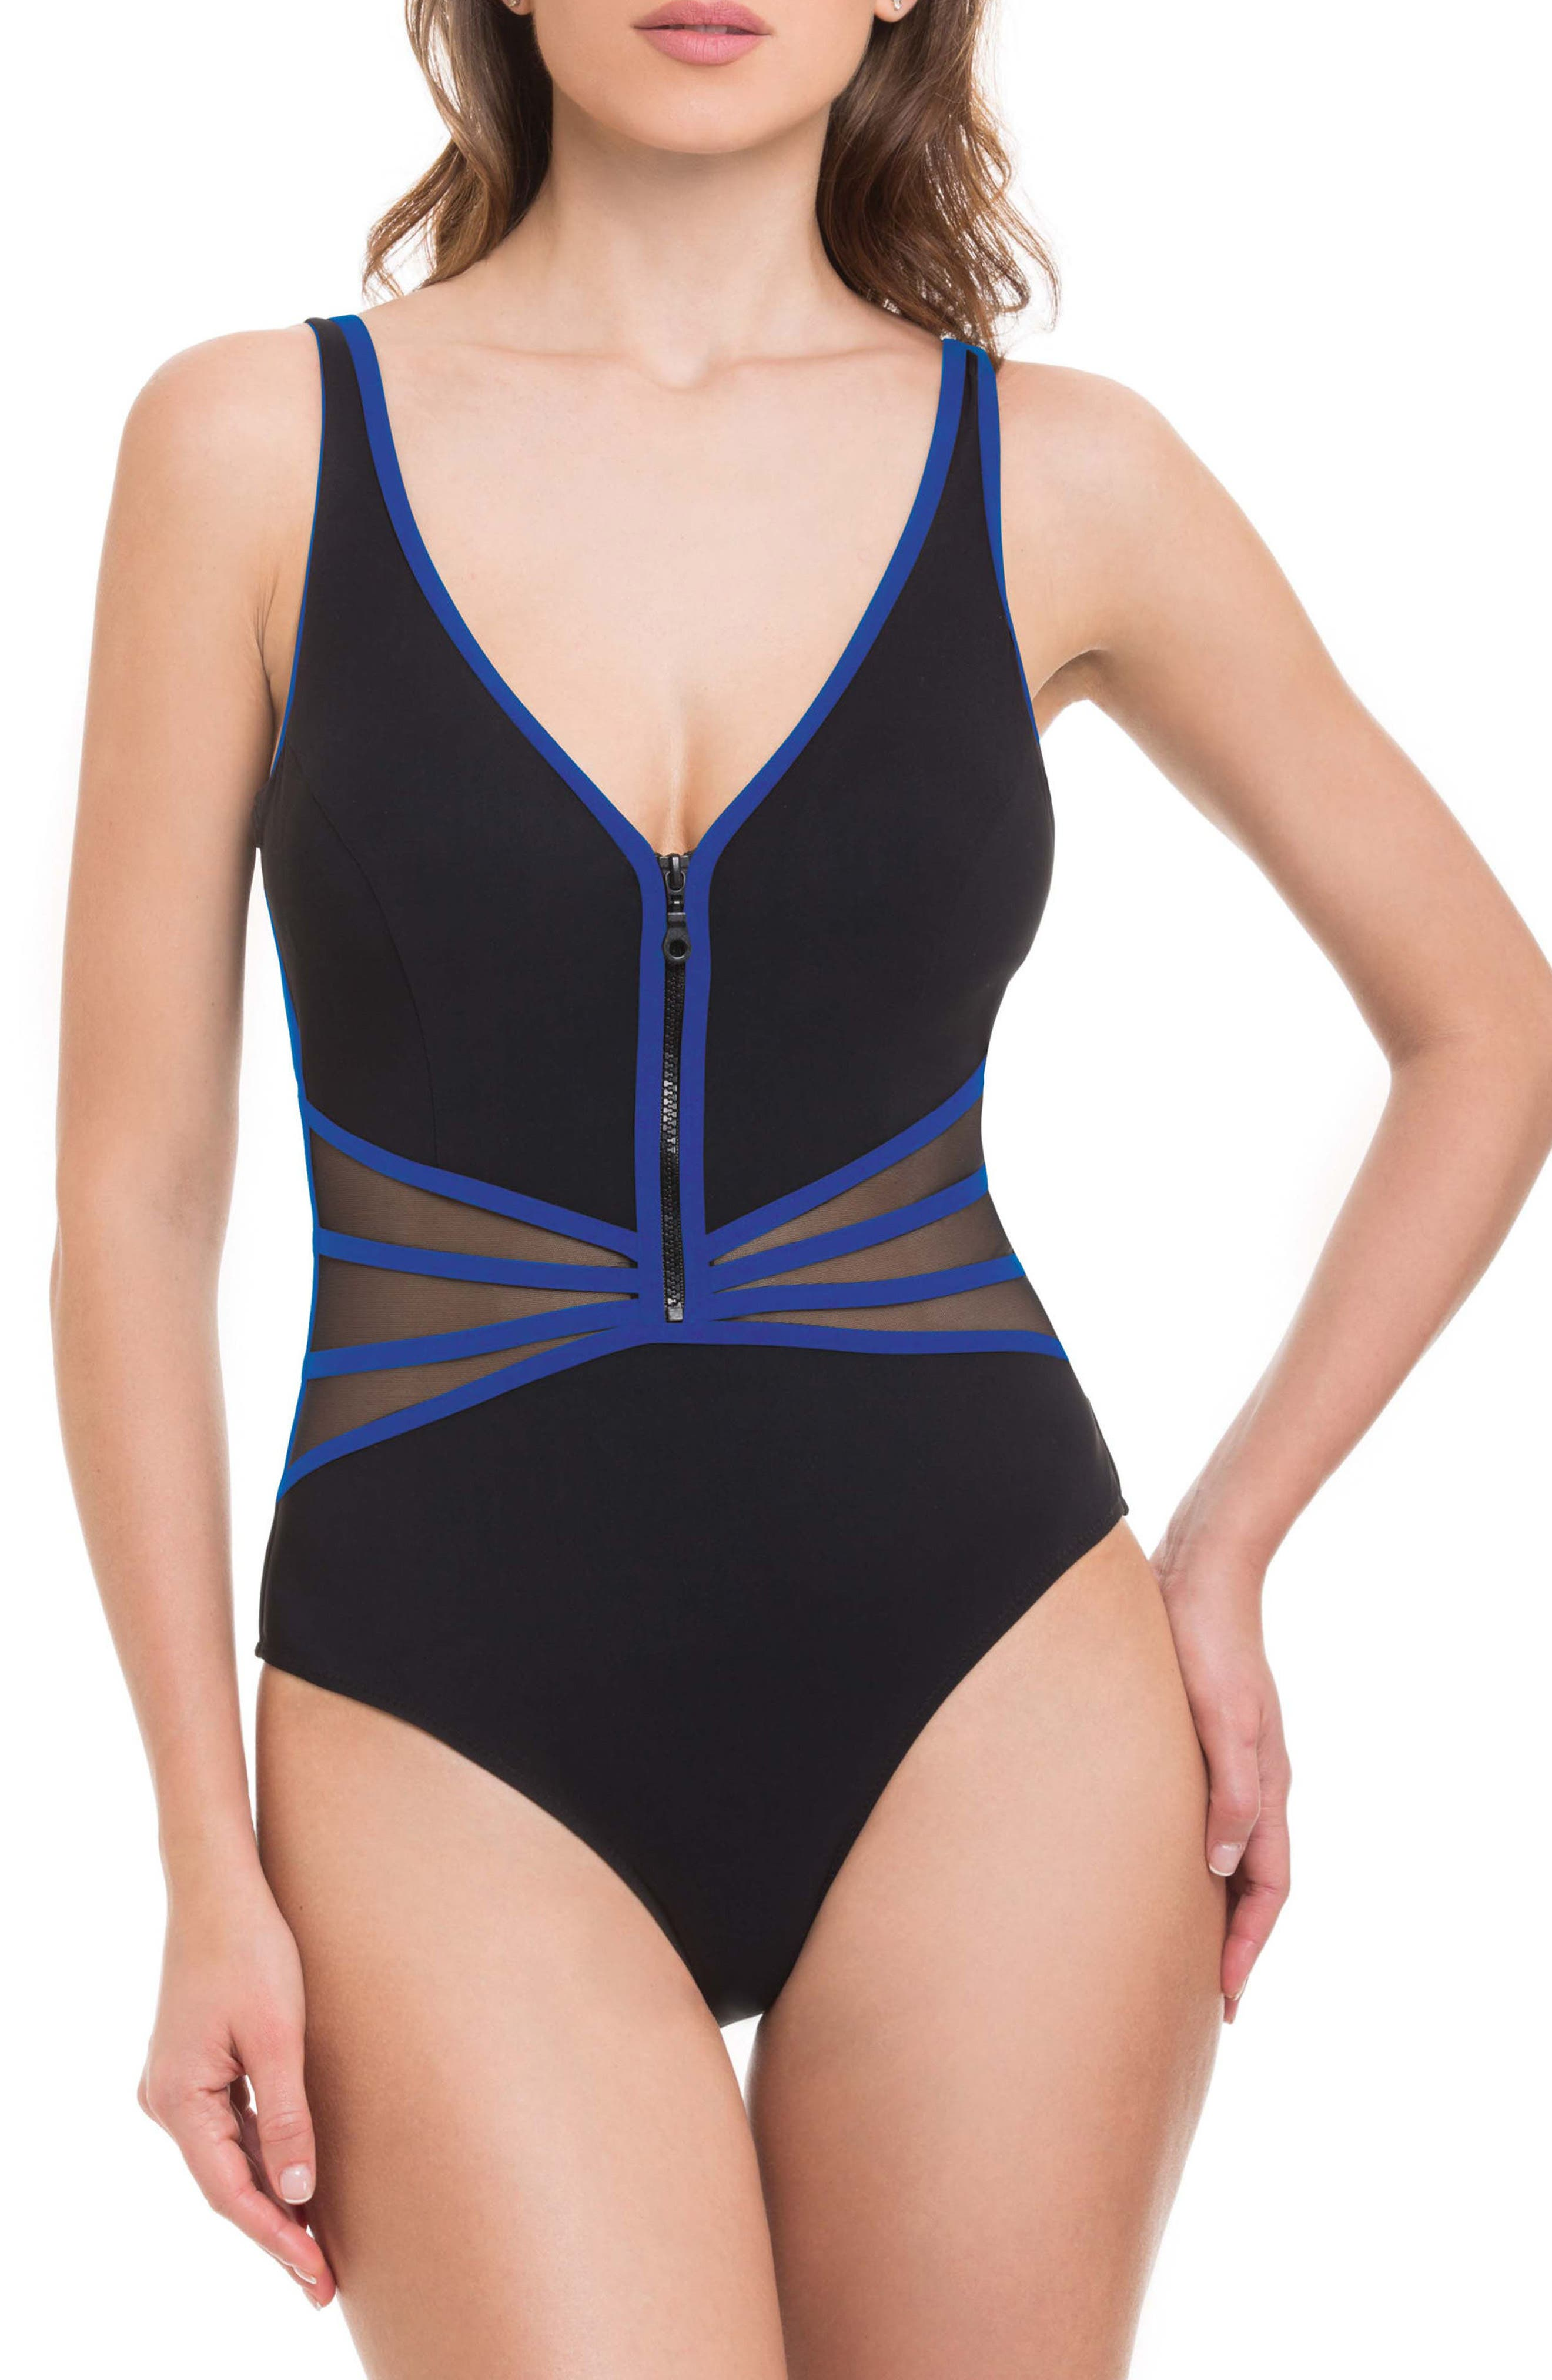 Main Image - Profile by Gottex Grand Prix One-Piece Swimsuit